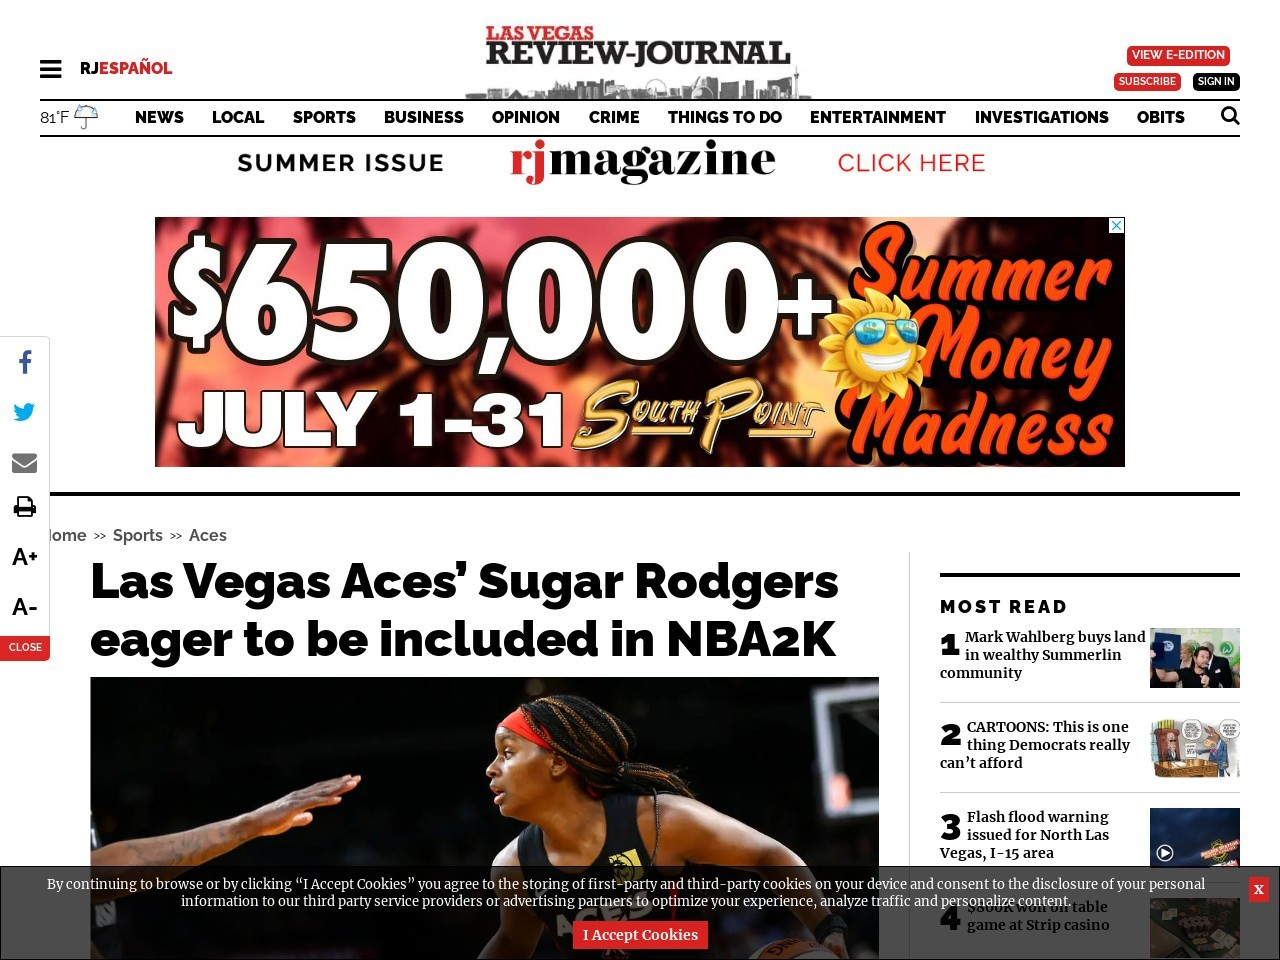 Las Vegas Aces' Sugar Rodgers eager to be included in NBA2K